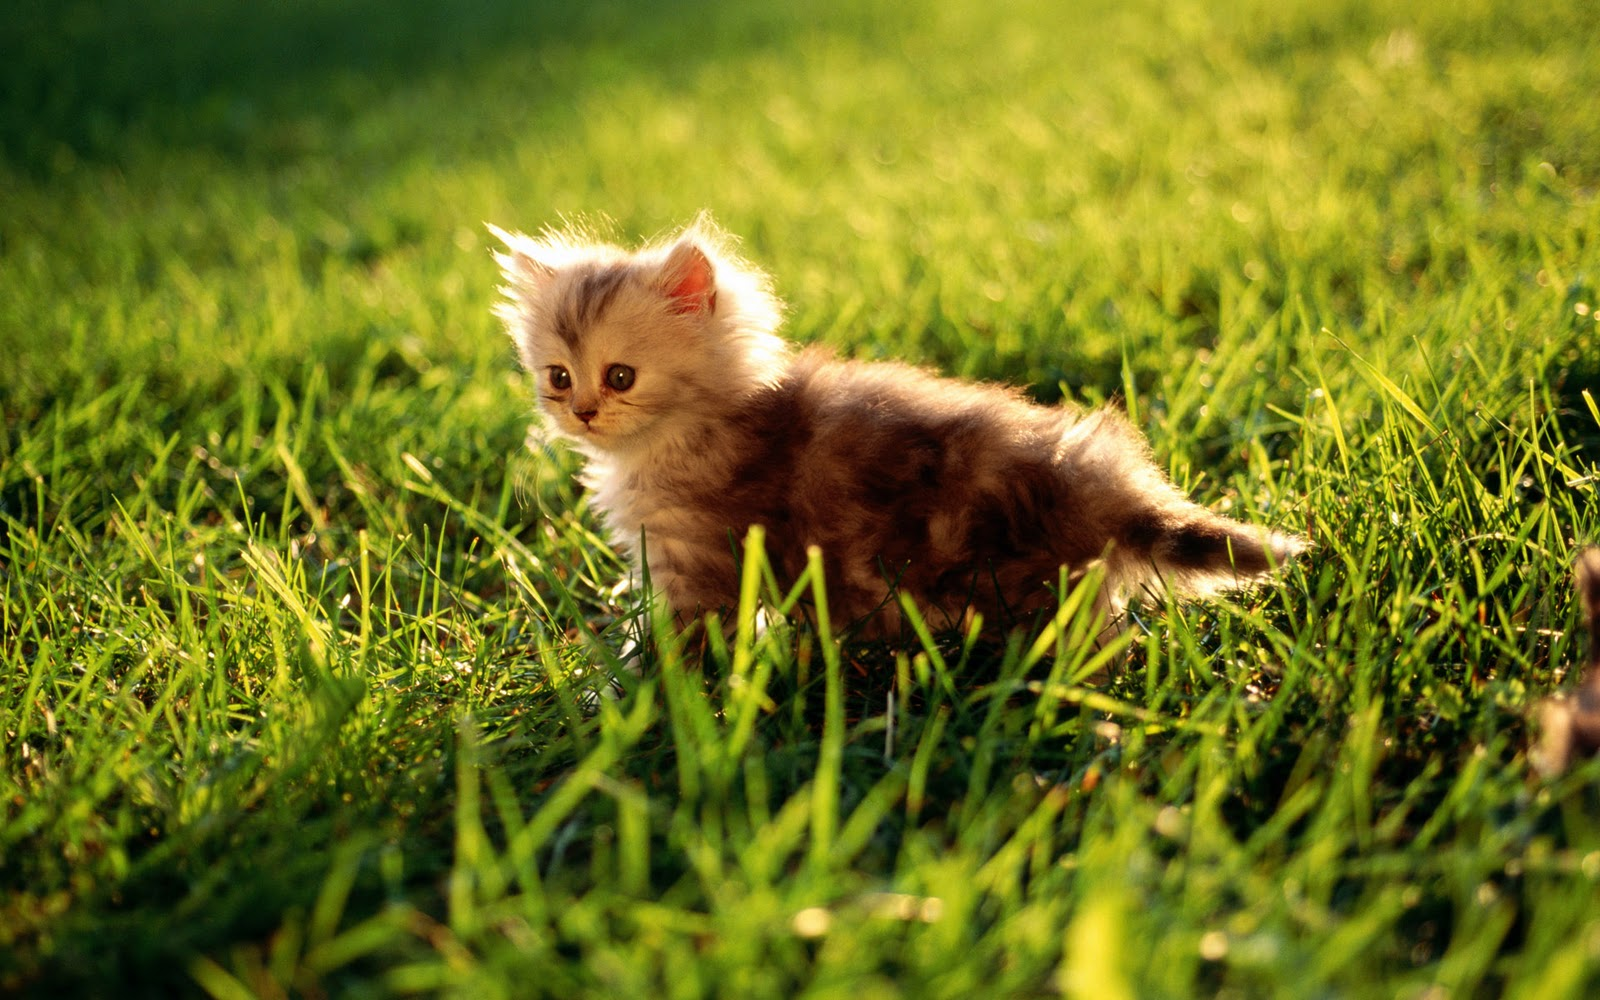 Cats High resolution Wallpapers